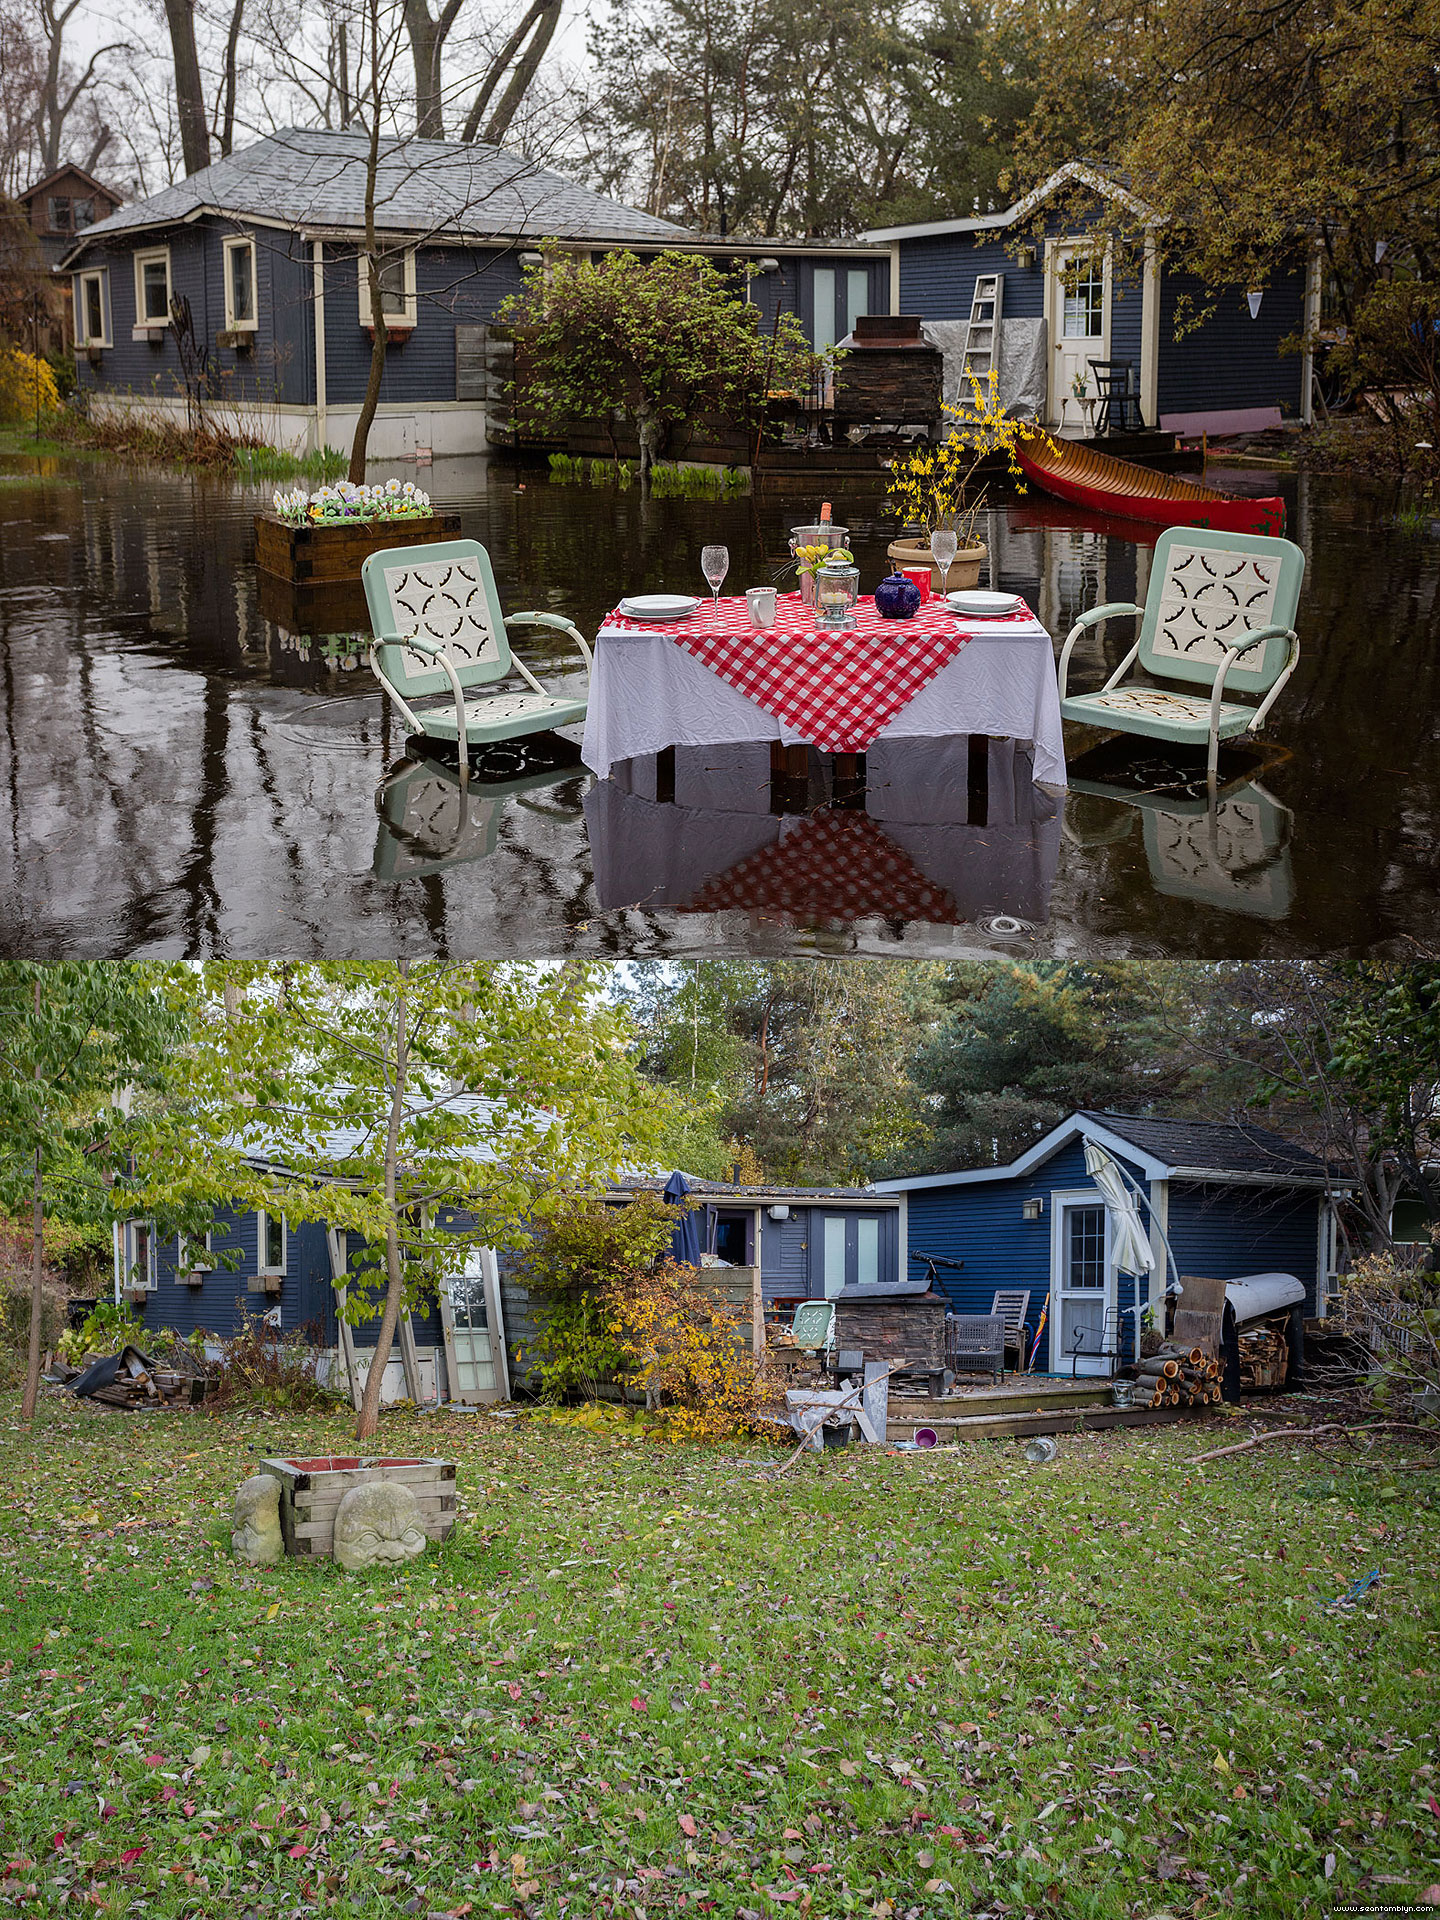 Table set for two during and after the Flood of 2017, Ward's Island, Toronto Islands